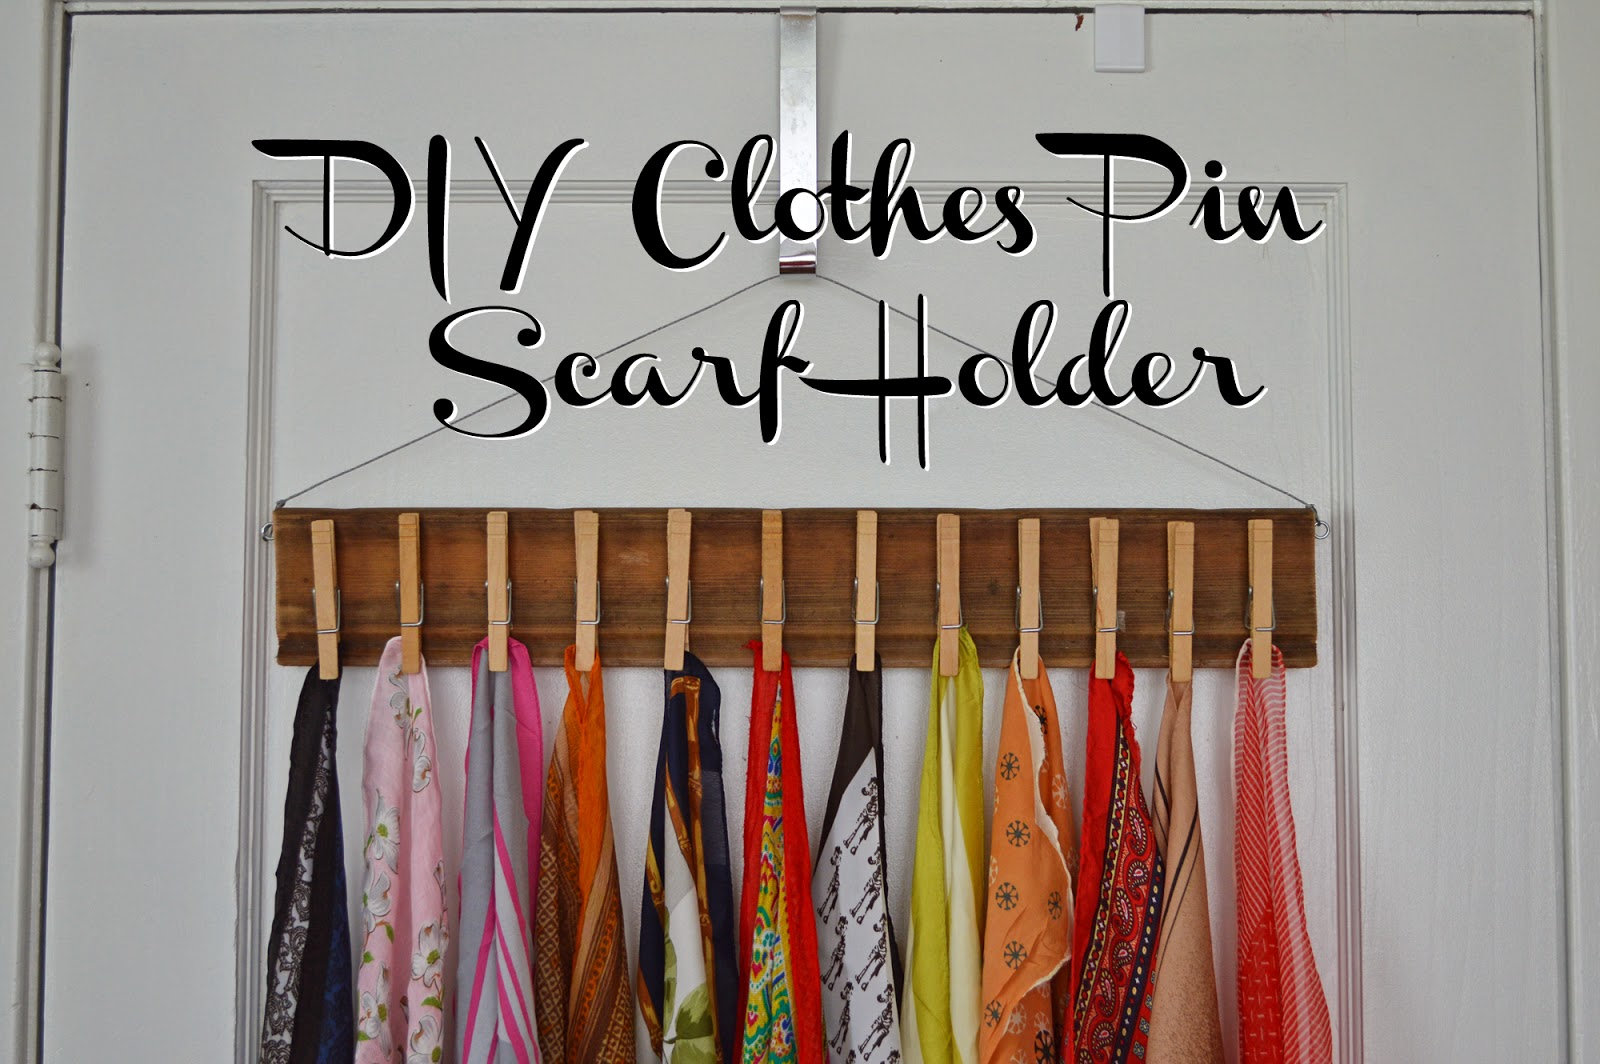 Diy Clothes Pin Scarf Holder